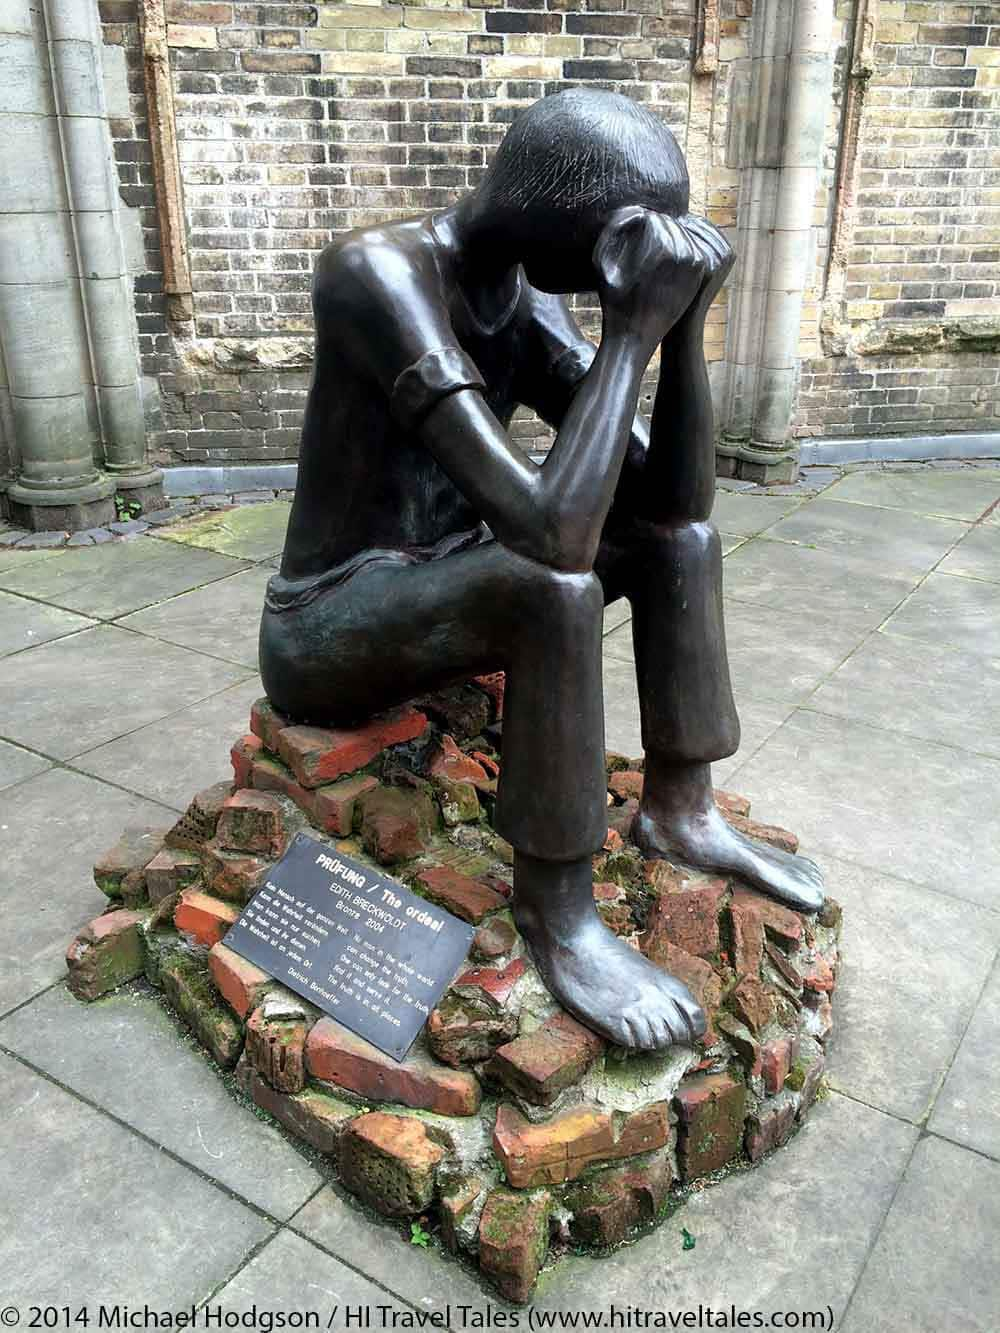 This sculpture at St Nikolai Kirche is dedicated to the memorial in Sandbostel where in one of the largest prisoner camps established by the Nazis more than 50,000 people from many countries had died until 1945. The base of this sculpture consists of the original bricks of the prisoners' barracks which Sandbostel pupils had collected on the former camp grounds.